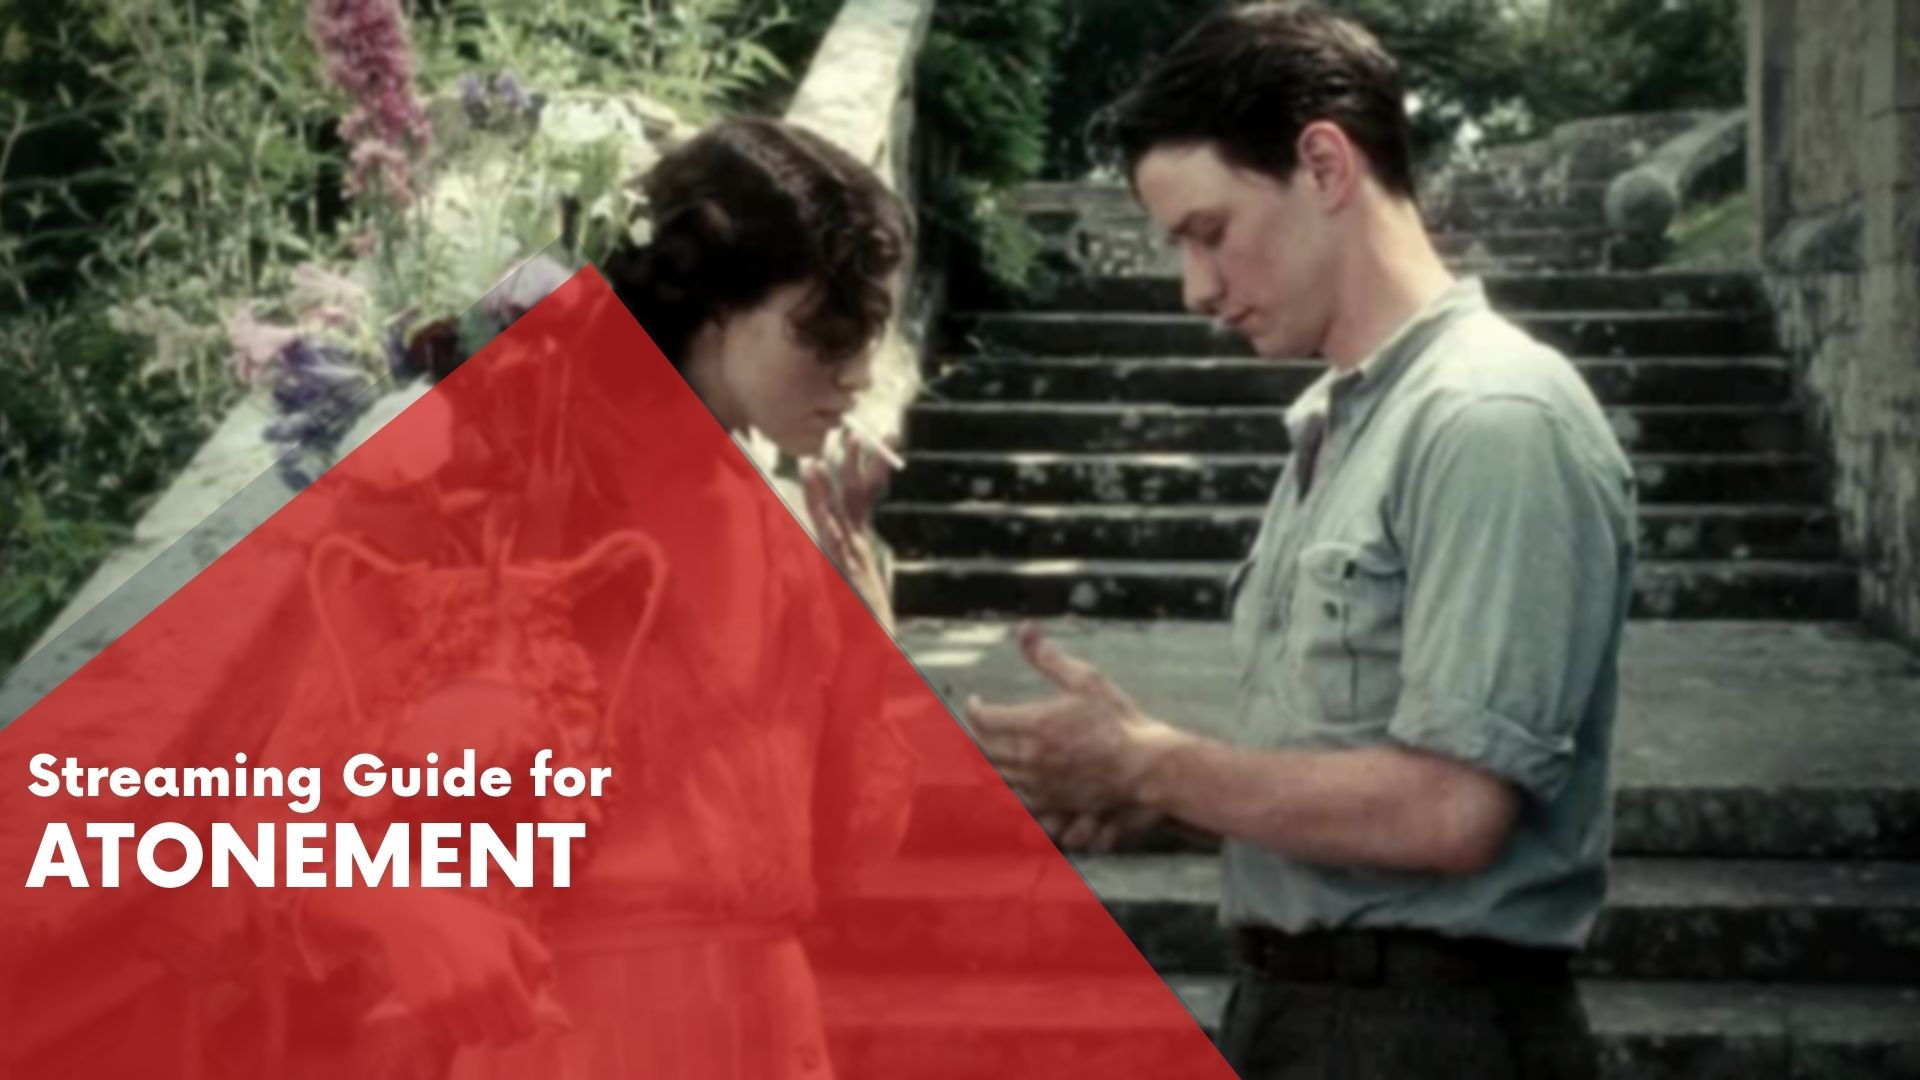 Answering if Atonement is available on Hulu